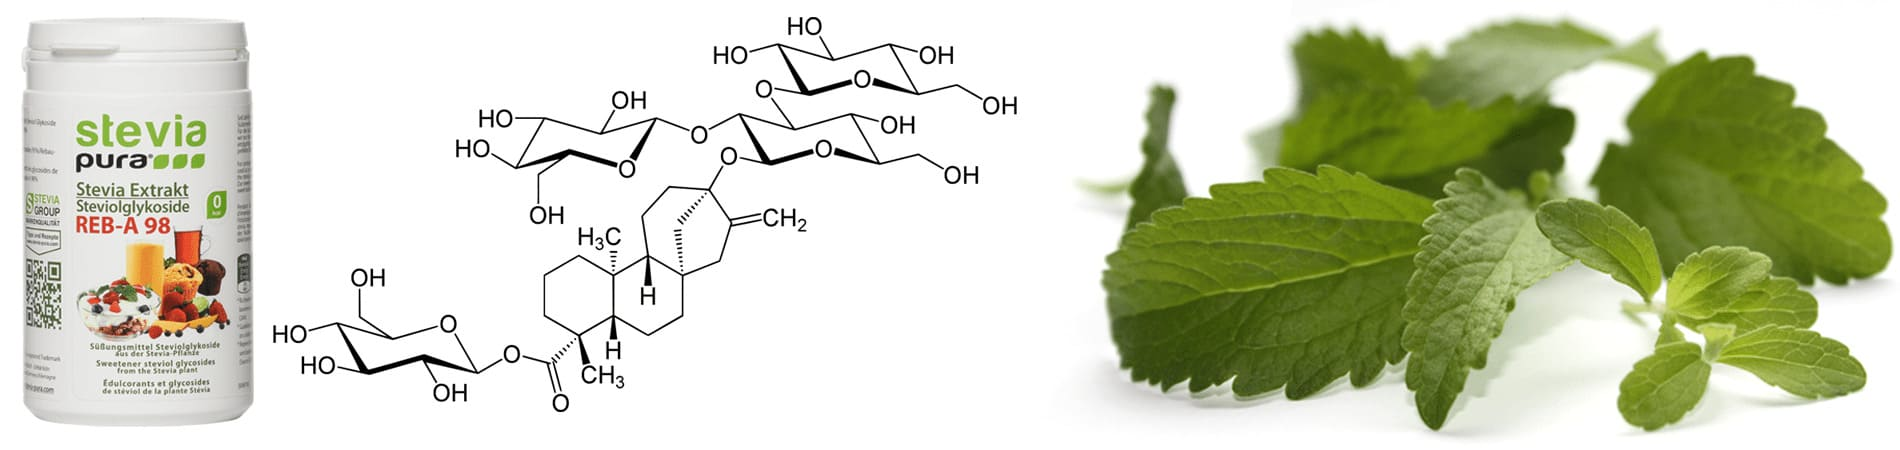 Stevia extract Rebaudioside A is a high-intensity sweetener